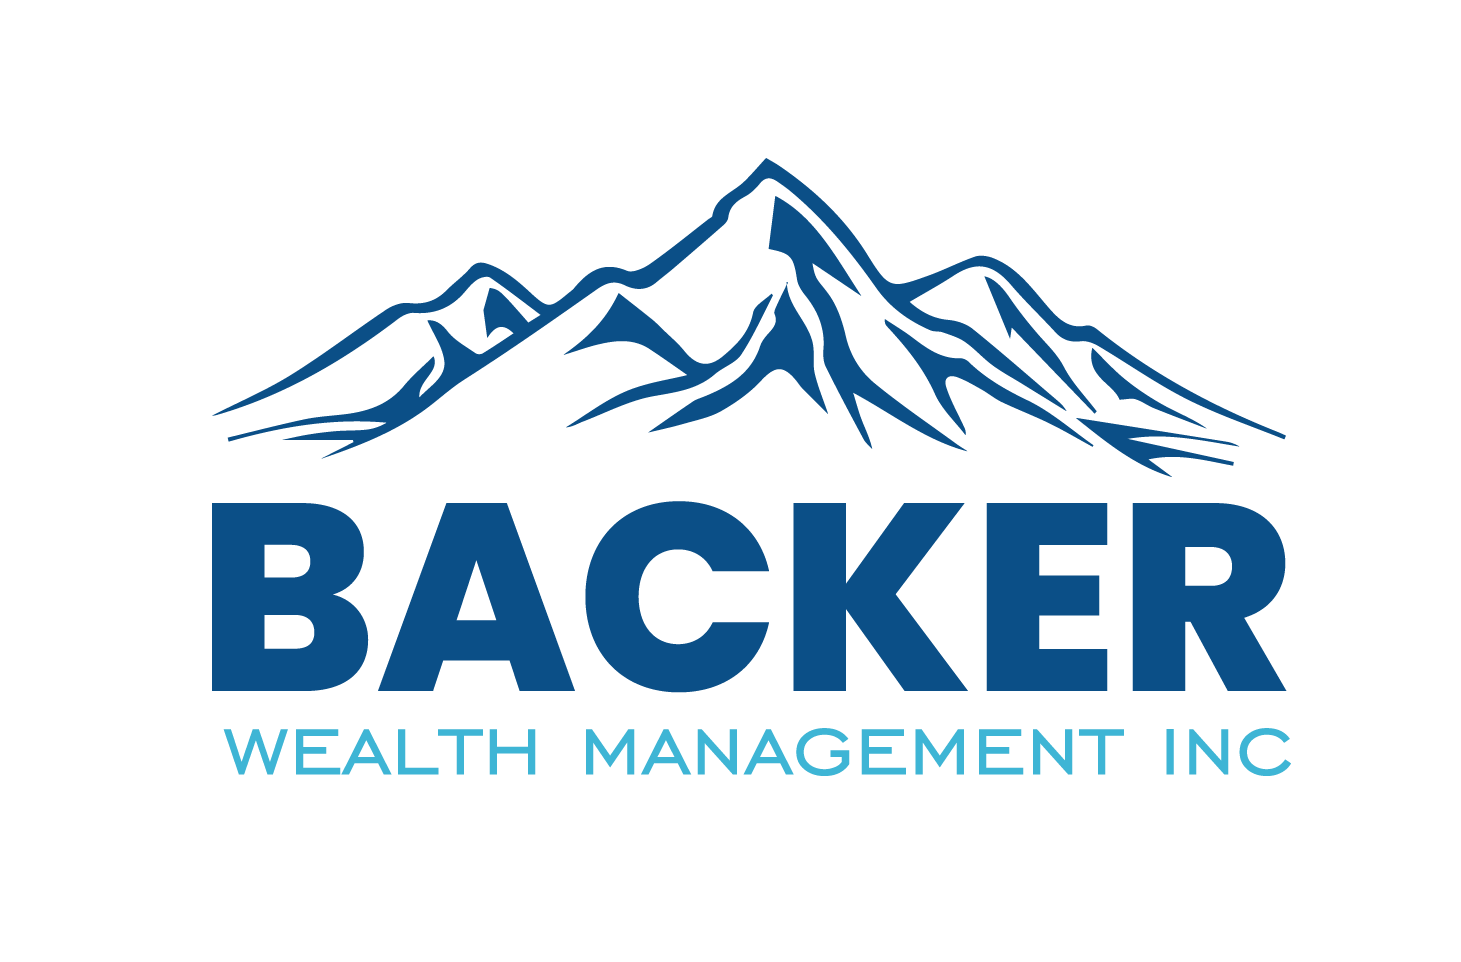 Backer Wealth